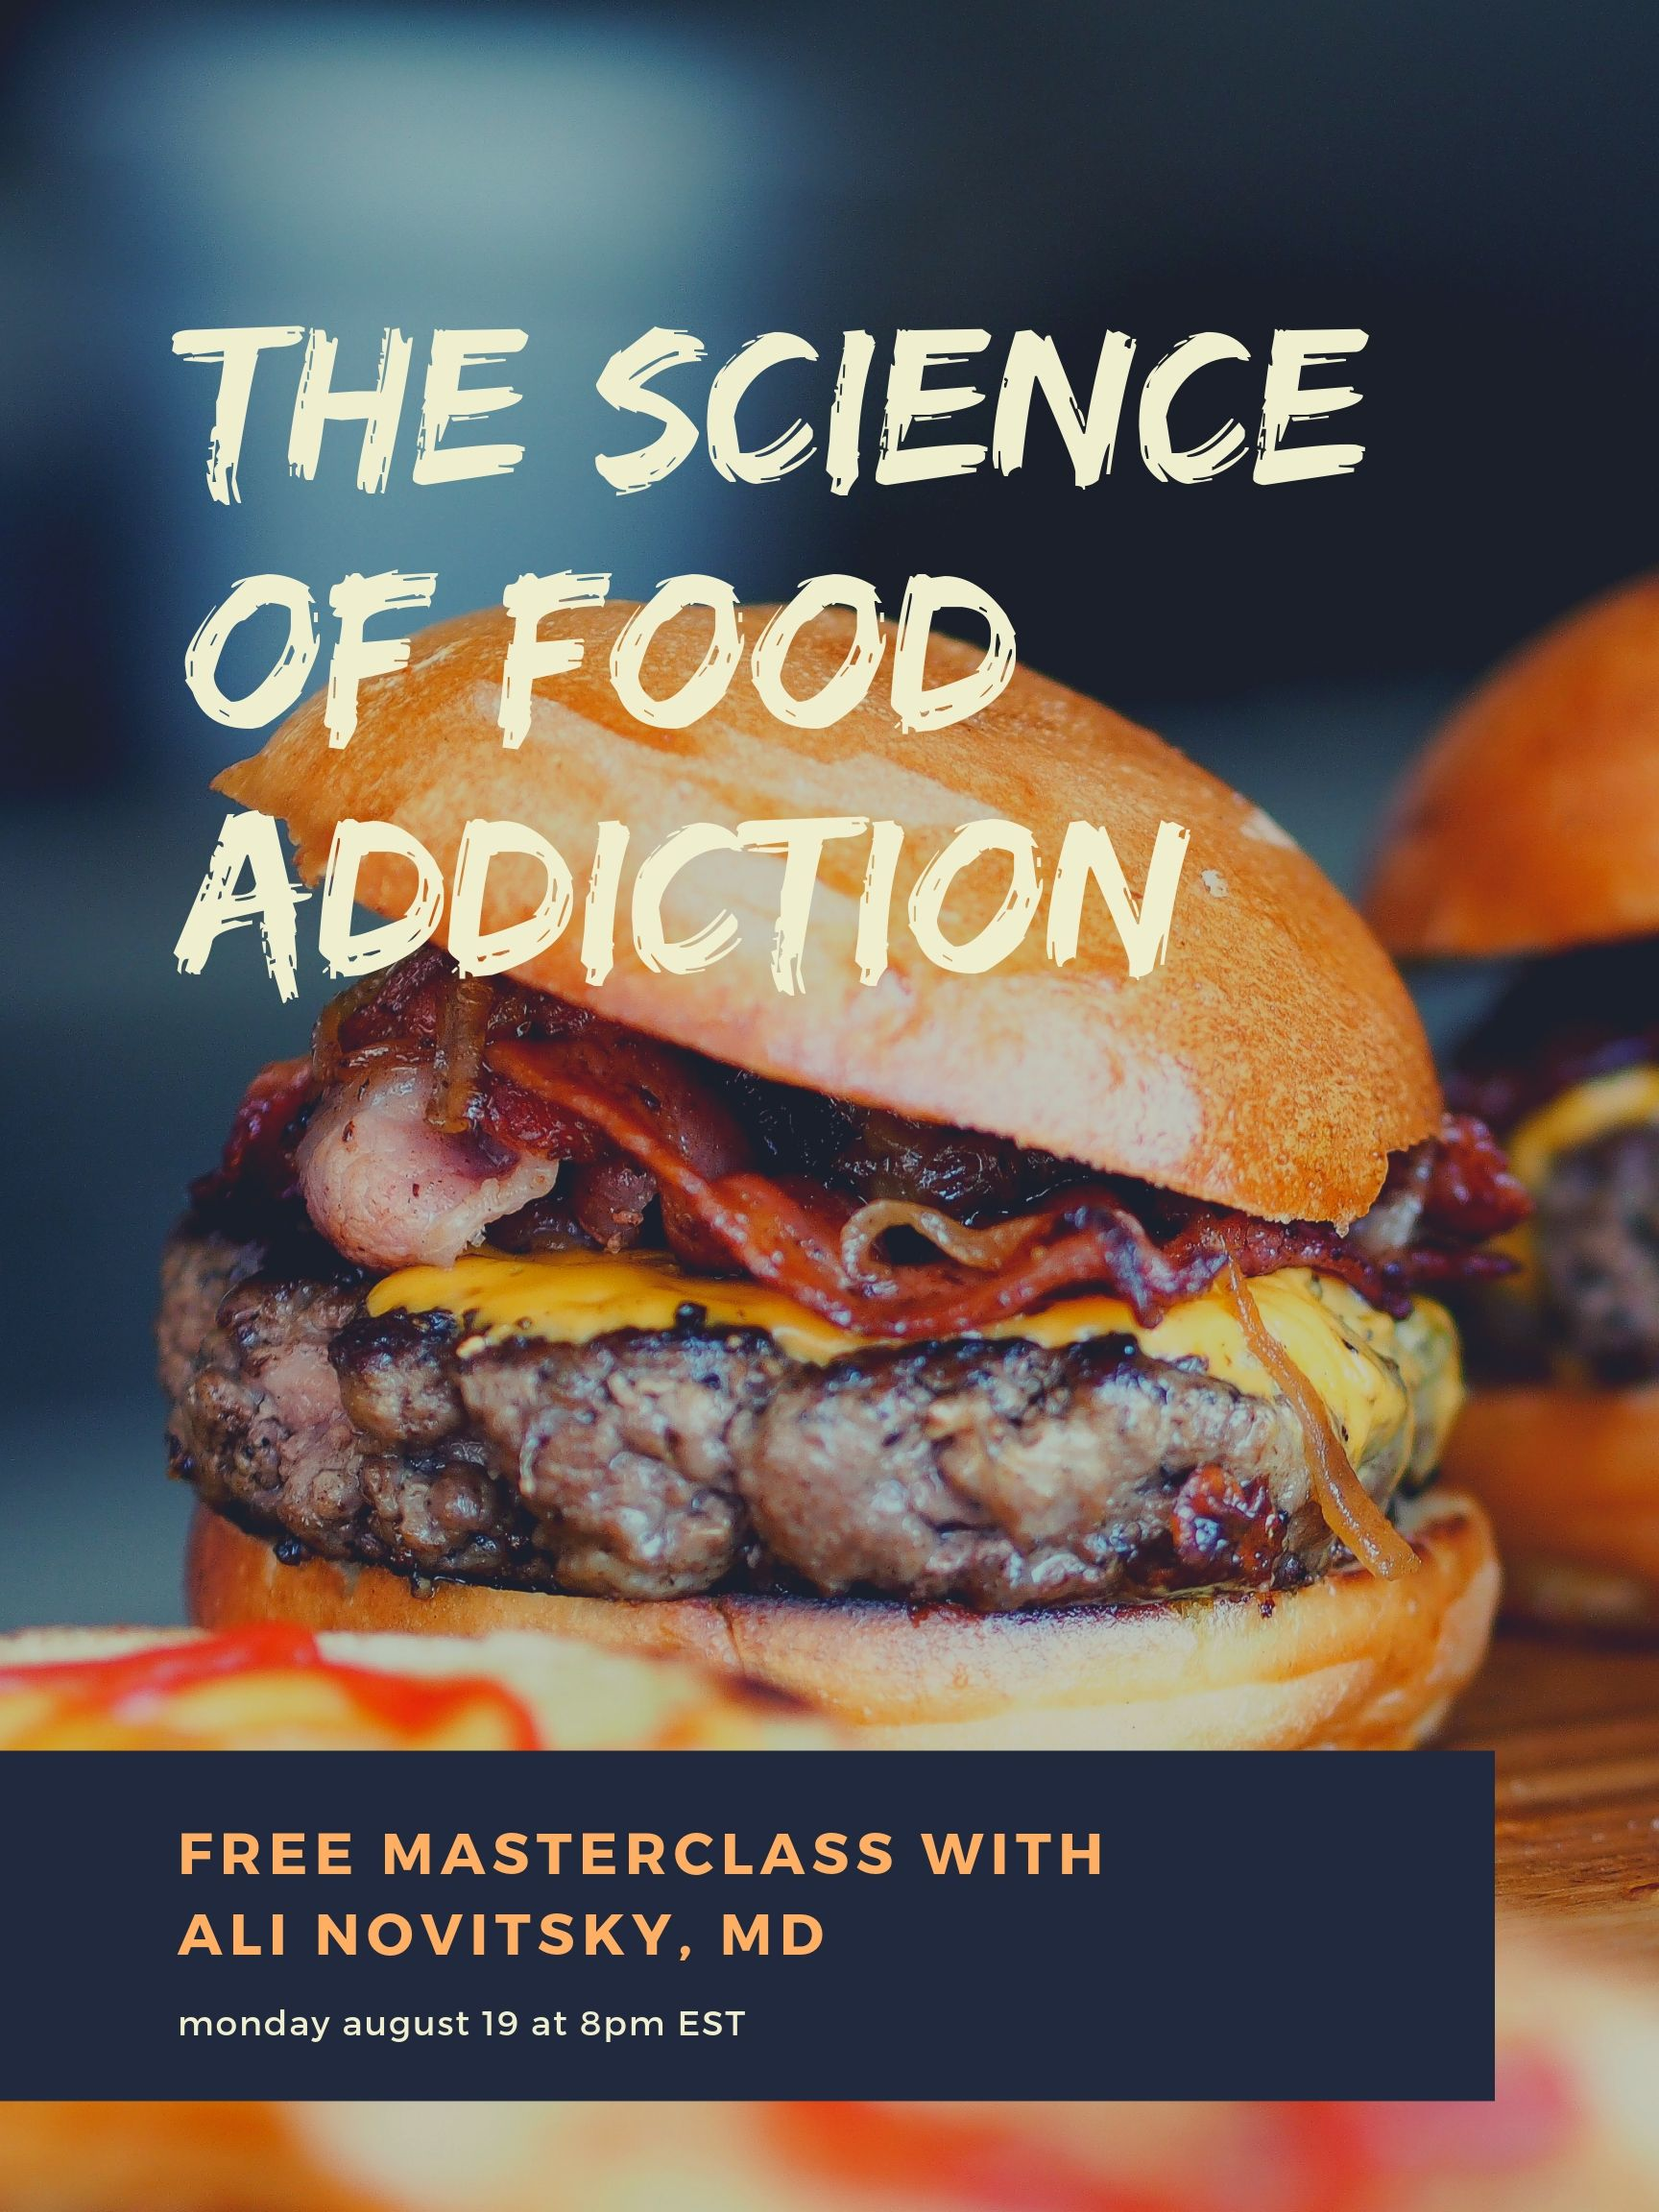 THE SCIENCE OF FOOD ADDICTION - A FREE MASTERCLASS